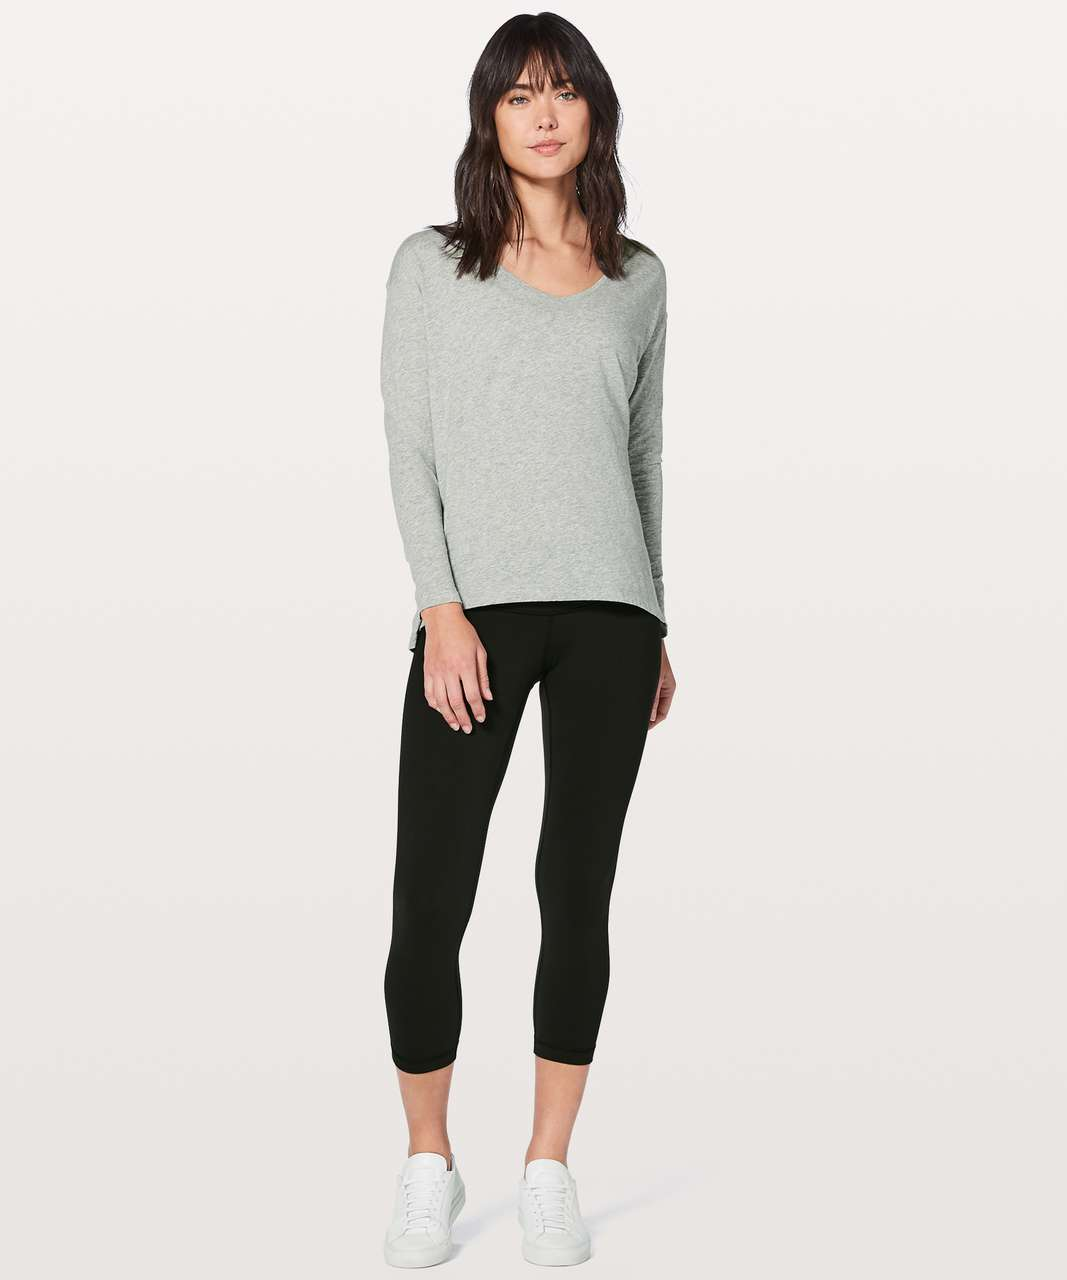 Lululemon Back In Action Long Sleeve V - Heathered Core Light Grey